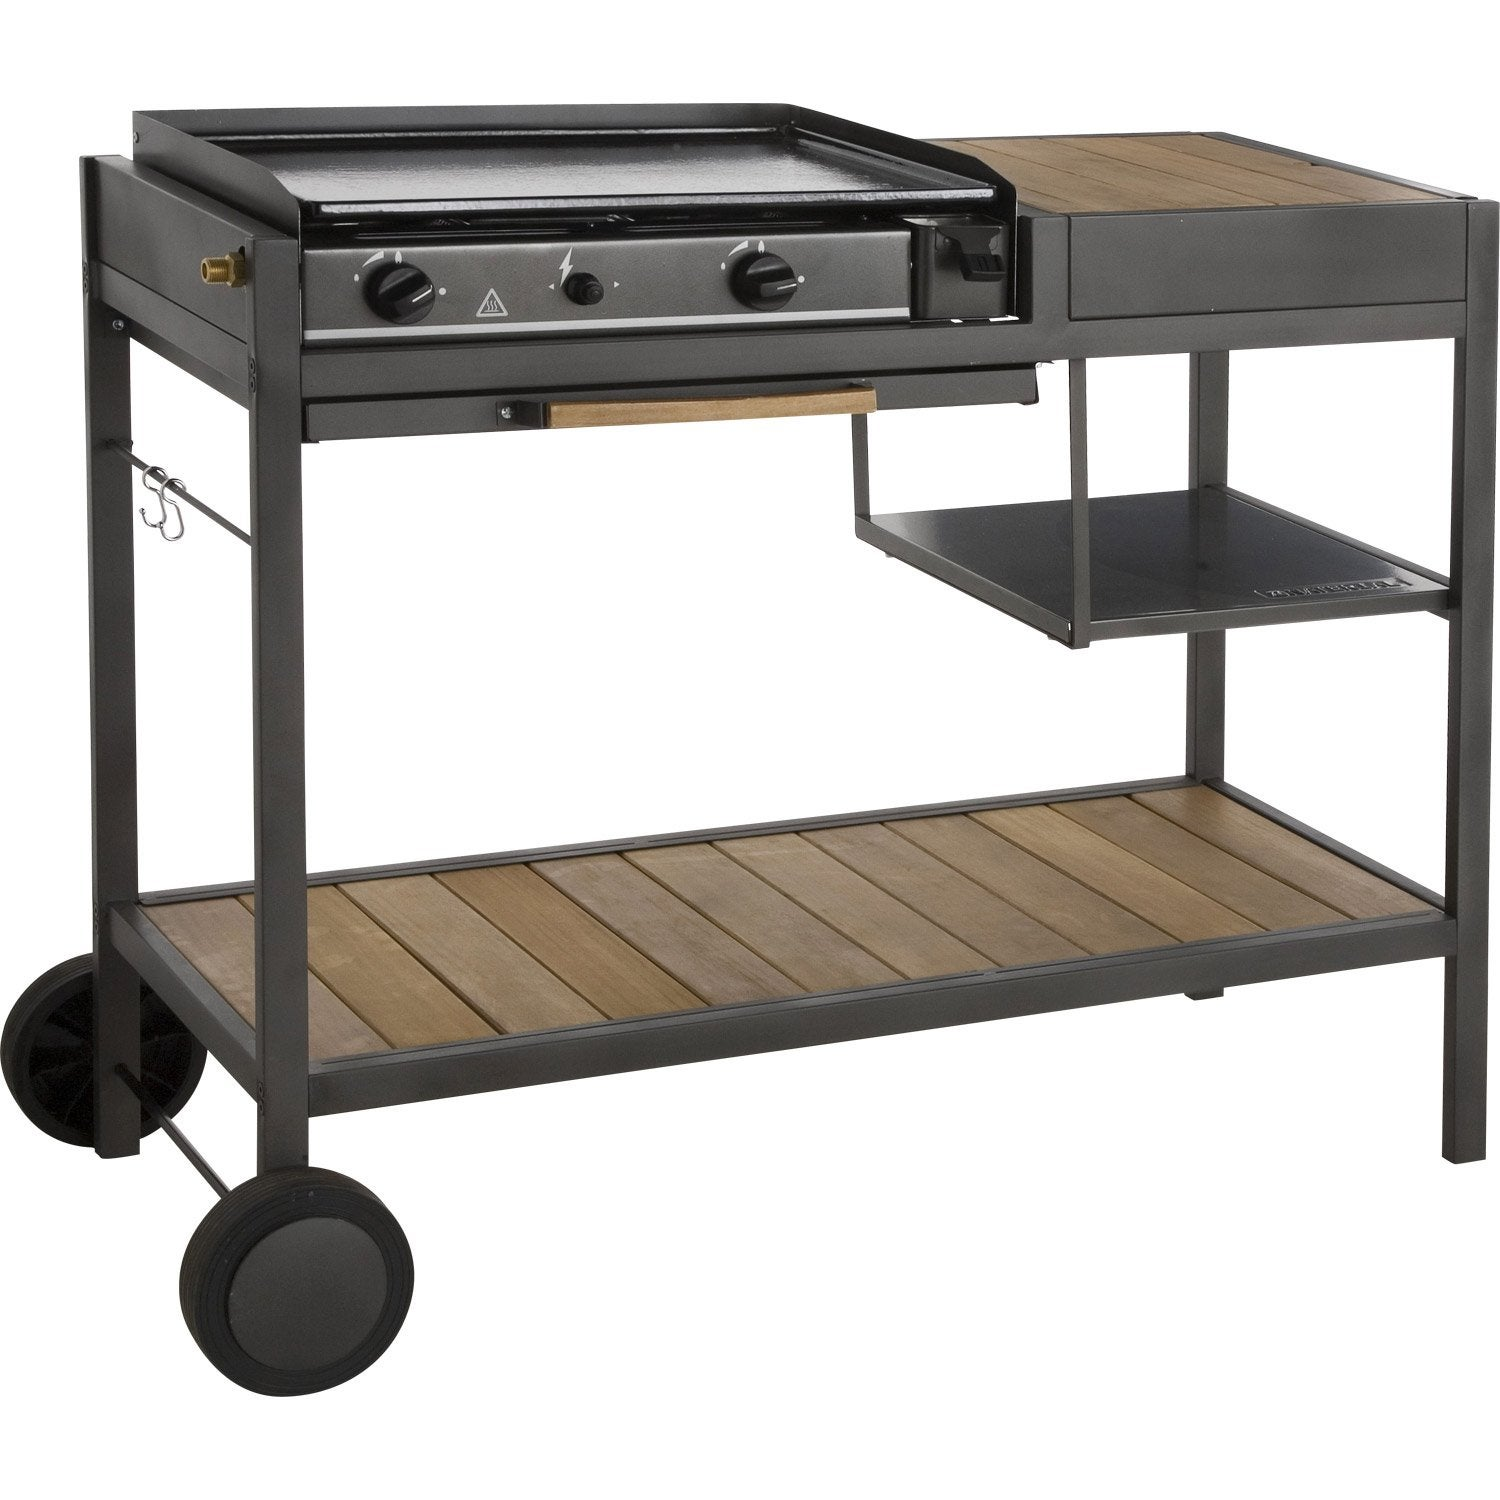 plancha gaz inox leroy merlin barbecue au charbon de bois with plancha gaz inox leroy merlin. Black Bedroom Furniture Sets. Home Design Ideas